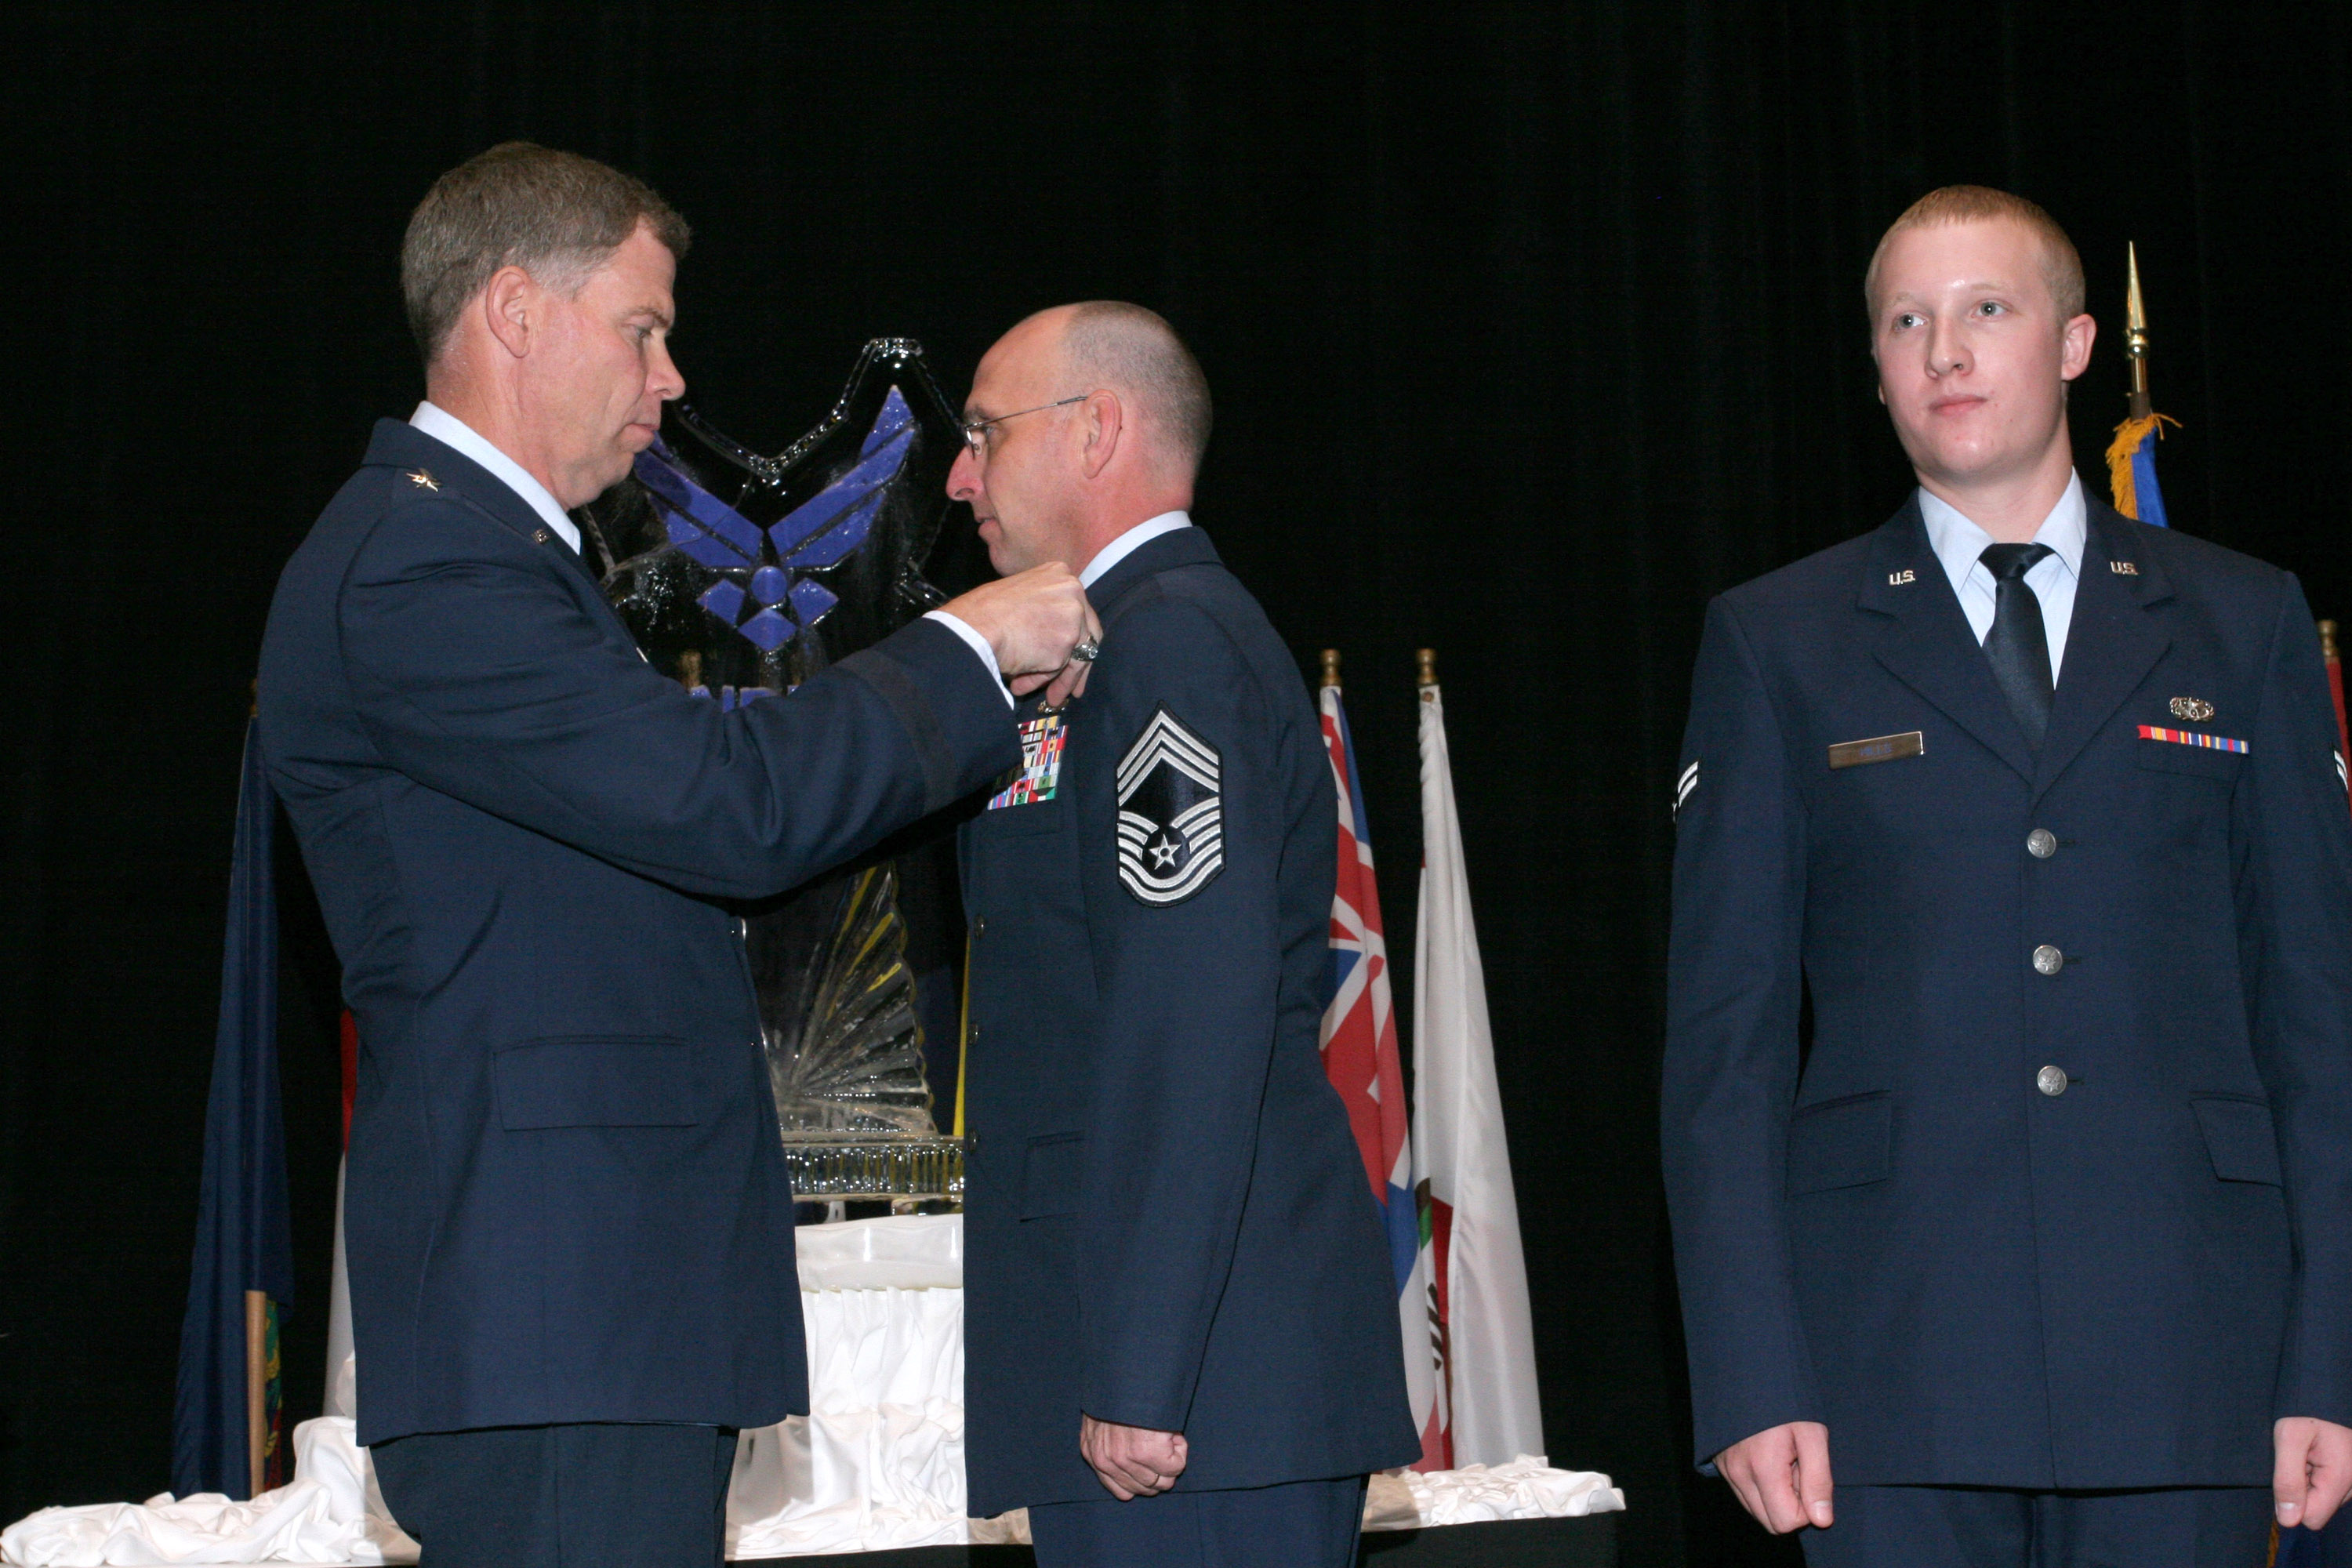 Airmen Awarded New Readiness Occupational Badges Us Air Force - Air-force-occupational-badges